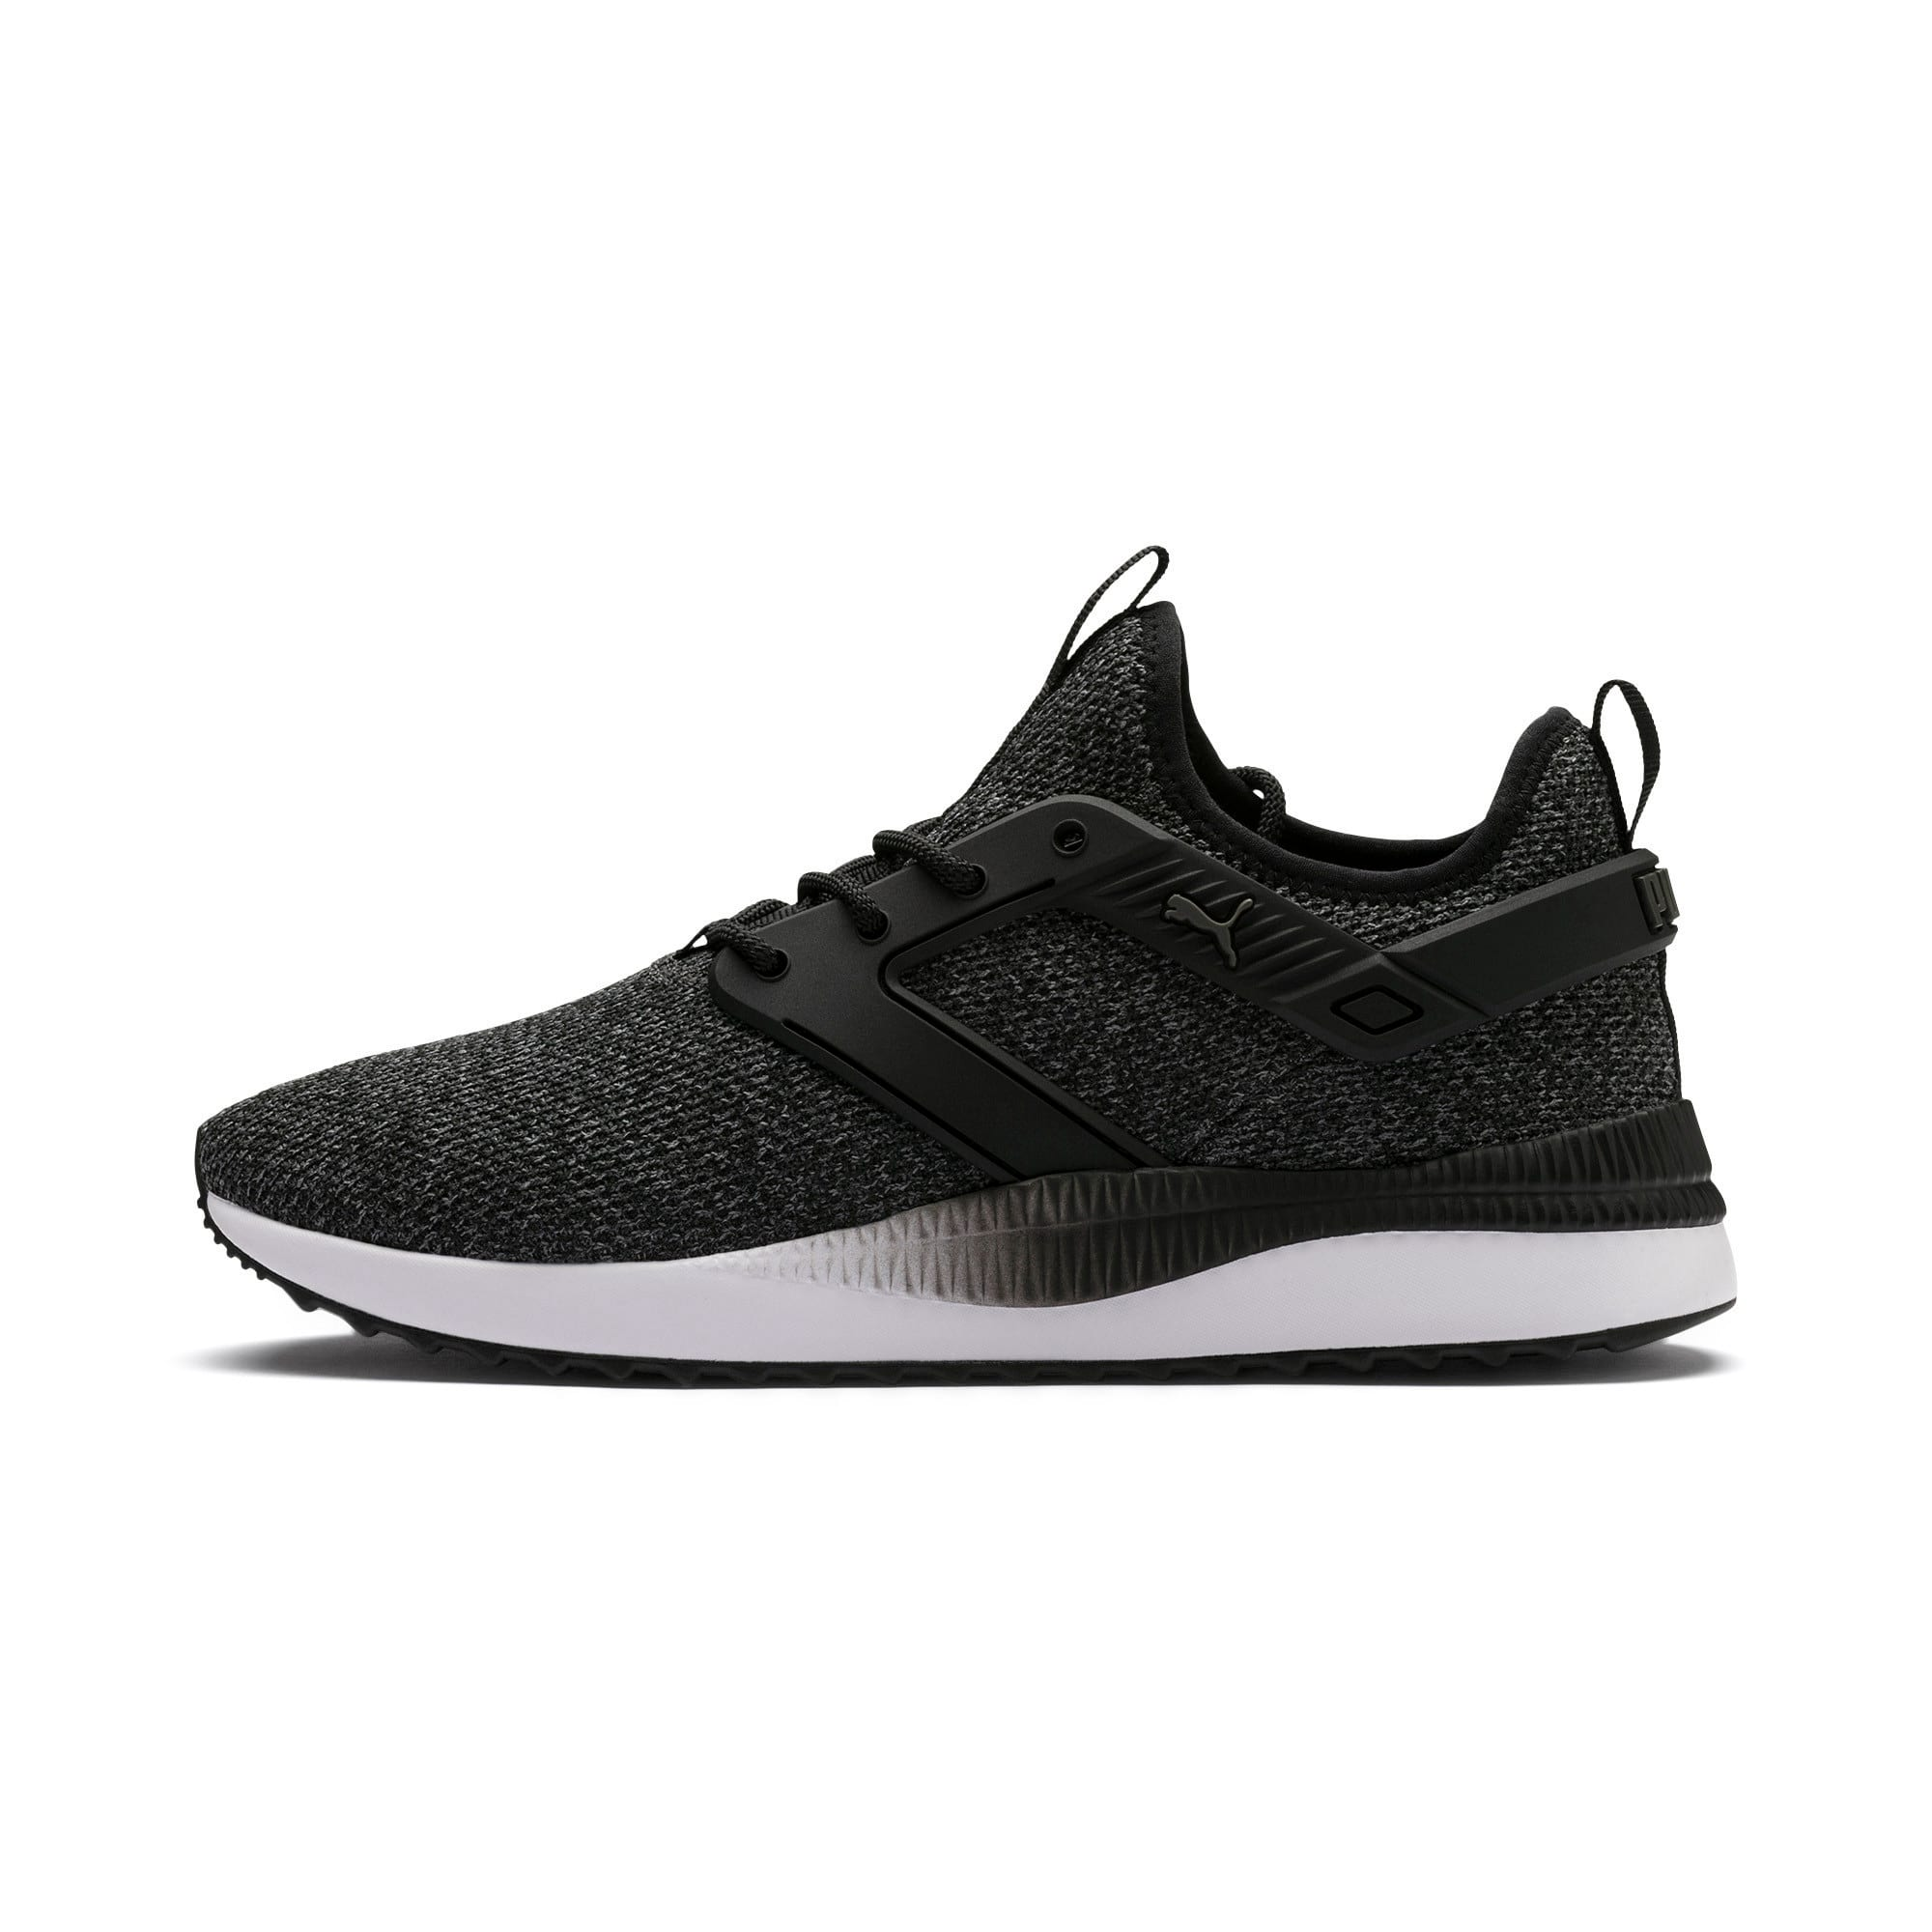 Thumbnail 1 of Pacer Next Excel VariKnit Trainers, Puma Black-Charcoal Gray, medium-IND